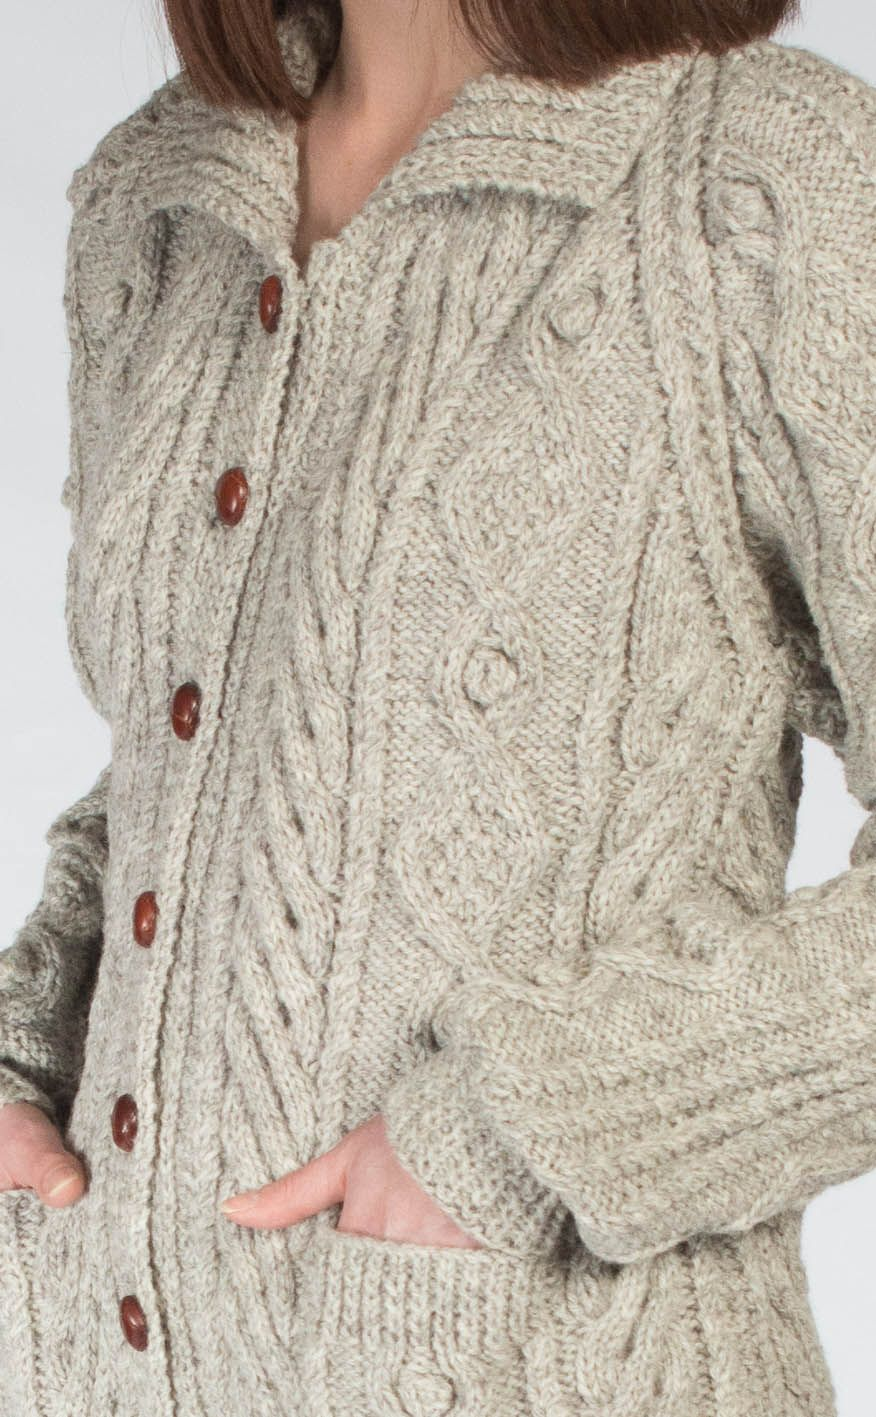 Ladies Luxury Hand-Knitted Aran Cardigan - Ness. Scotweb | cables ...